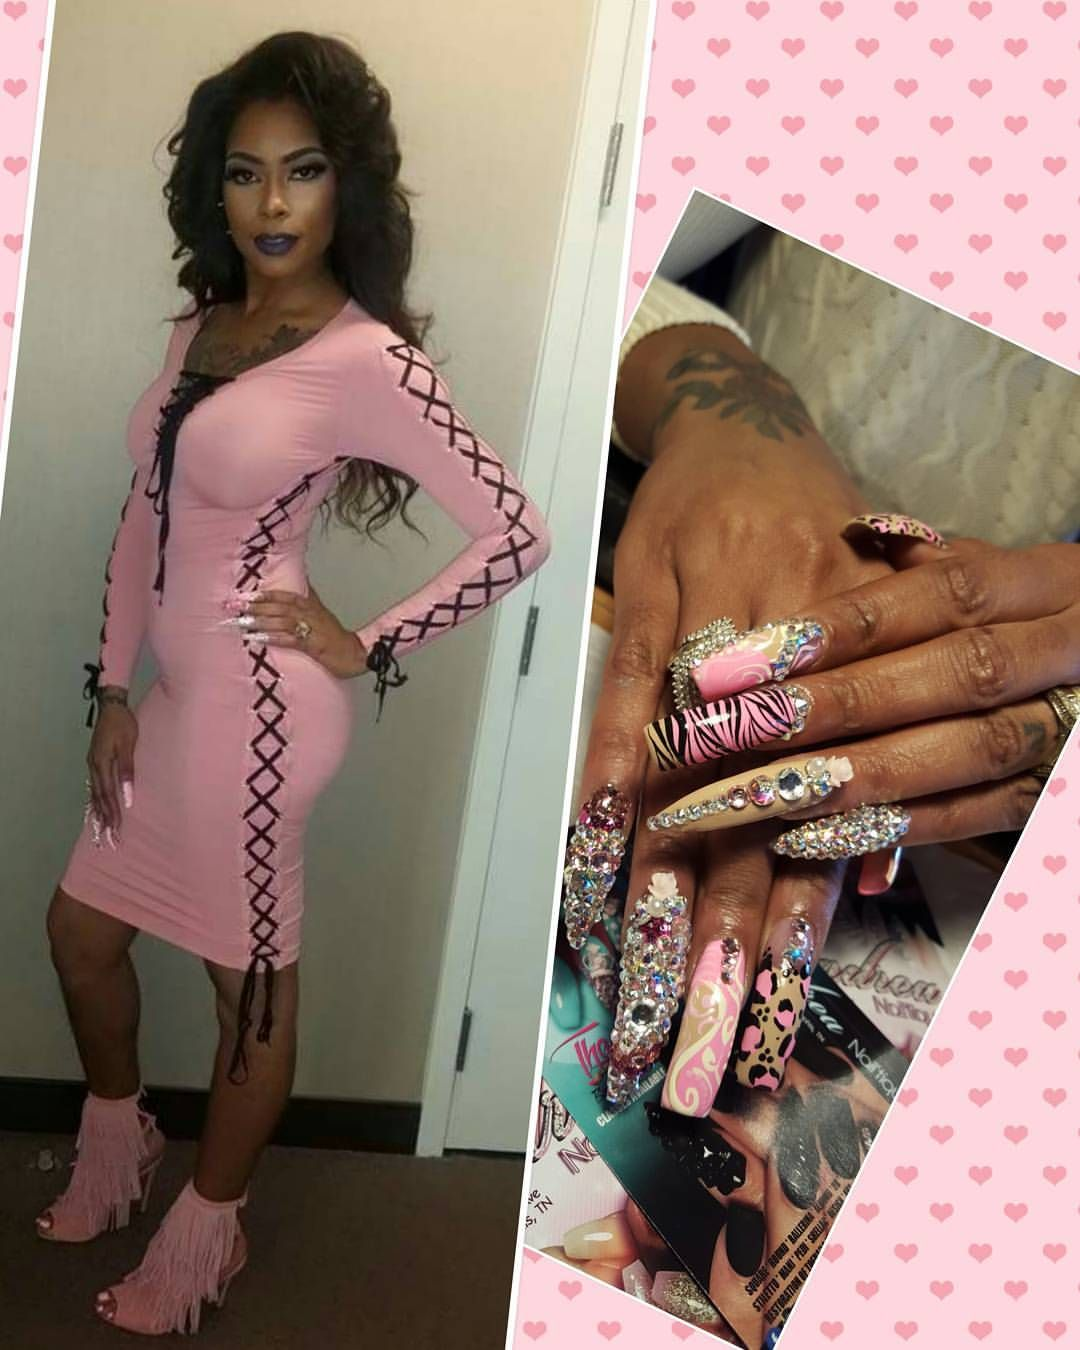 Sissy ain't playing with these folks nails hair makeup toes dress  shoes on fleek baby HAPPY VDAY MY LUV @k_baby901